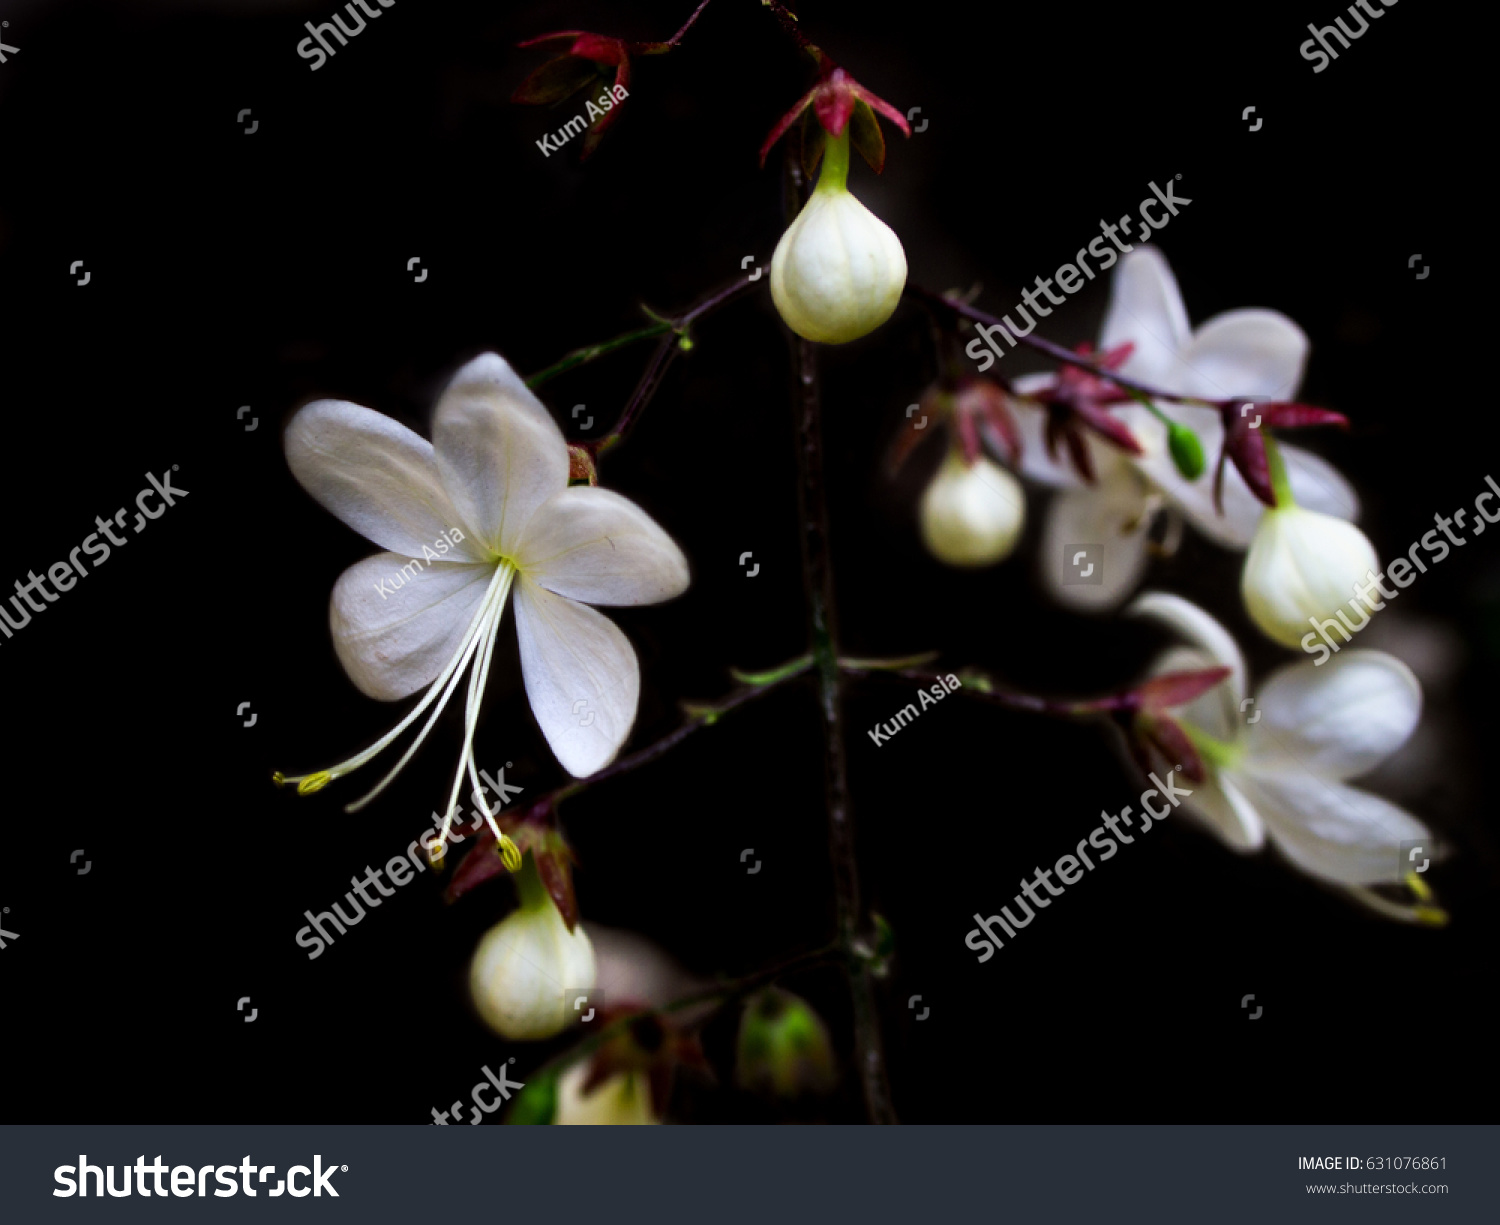 Images of white flowers with names images of white flowers with white flowers name nodding on black background mightylinksfo